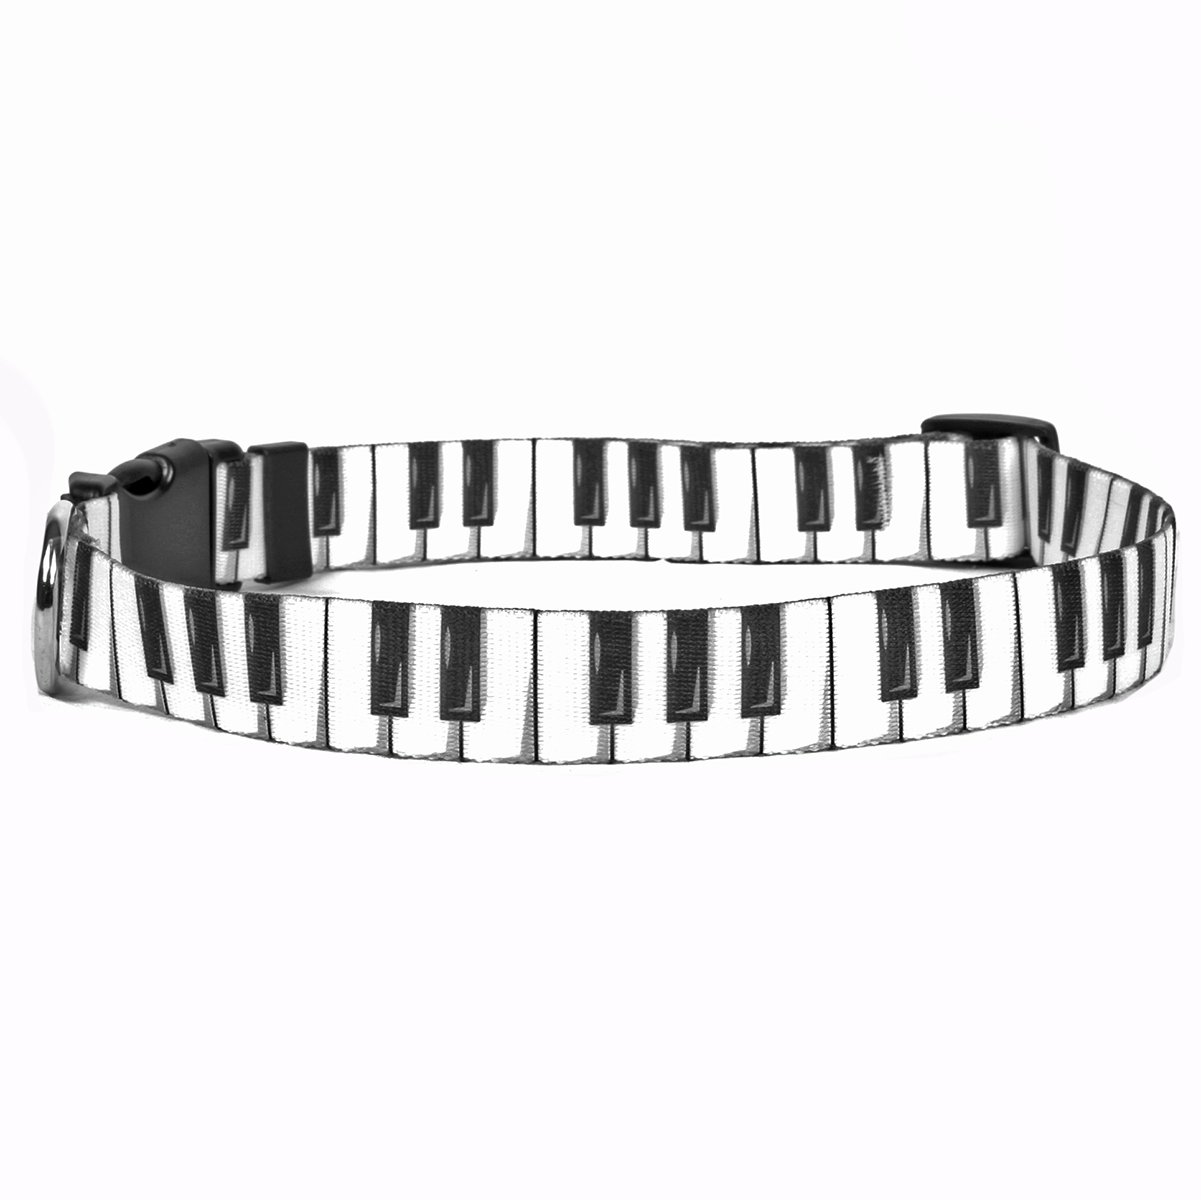 Yellow Dog Design Piano Keys Dog Collar, Large-1'' Wide fits Neck Sizes 18 to 28'' by Yellow Dog Design